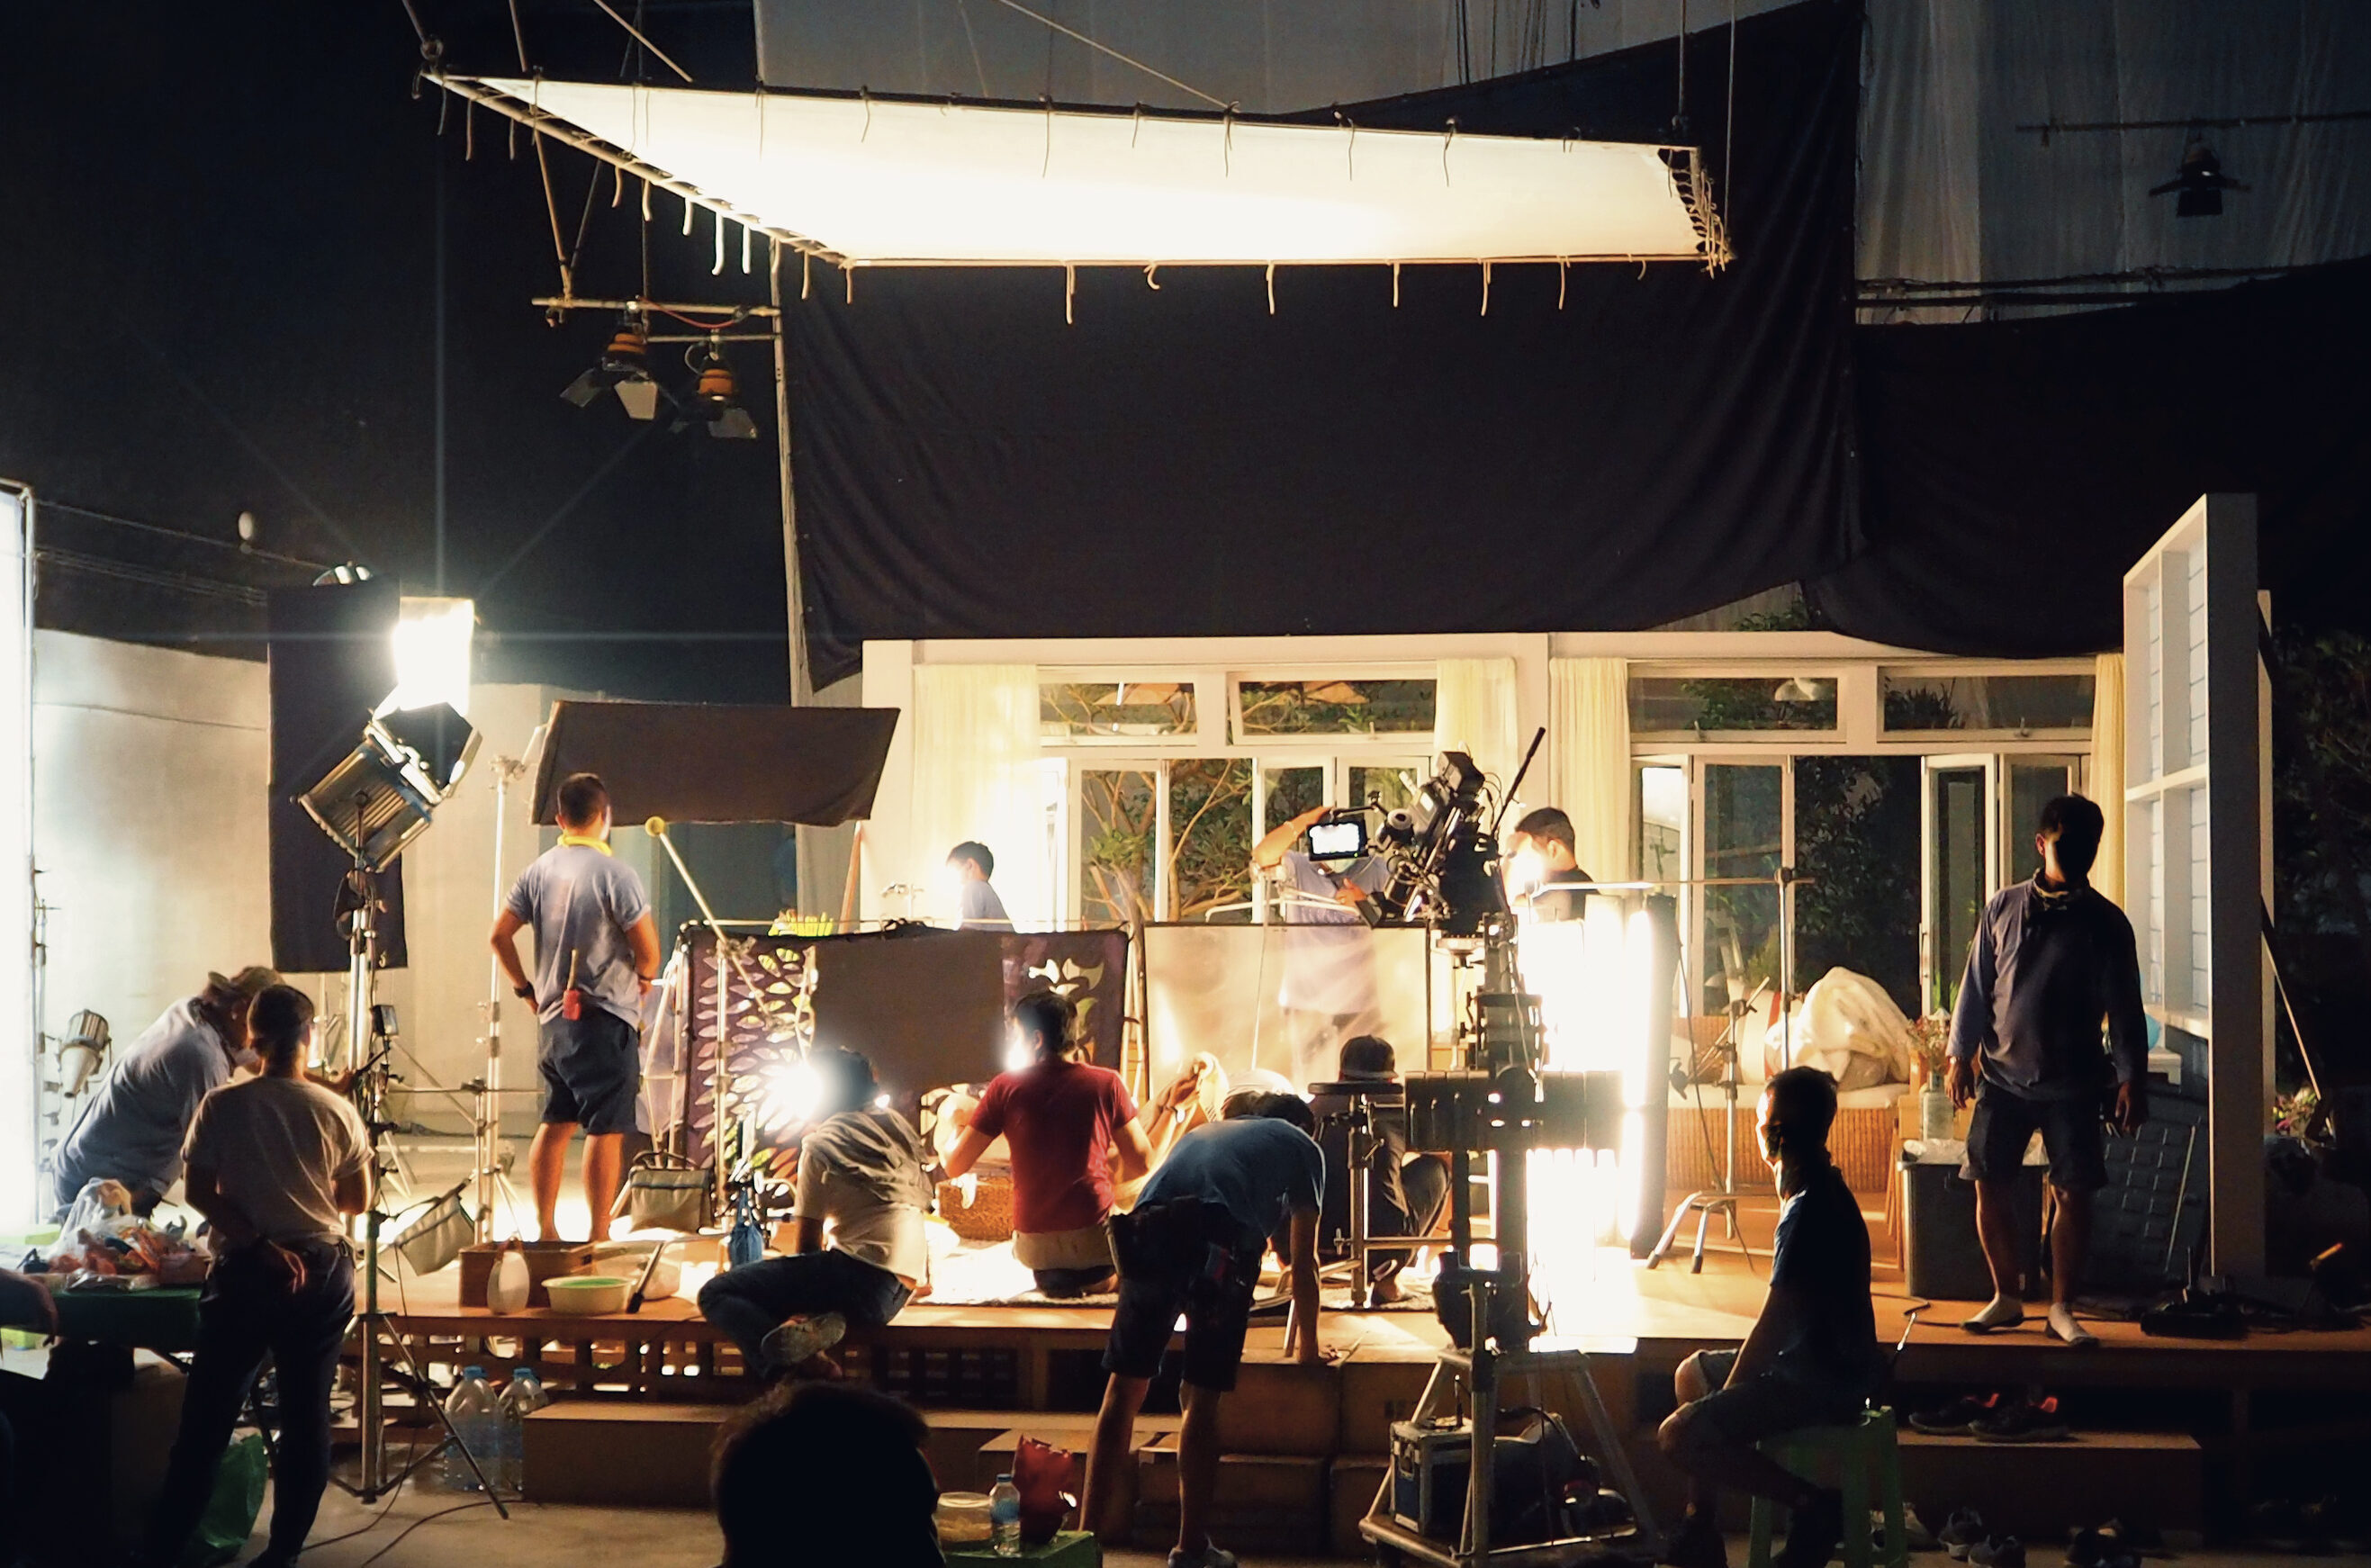 Silhouette of people working in big production studio for shooting or recording movie video by digital camera and lighting set.